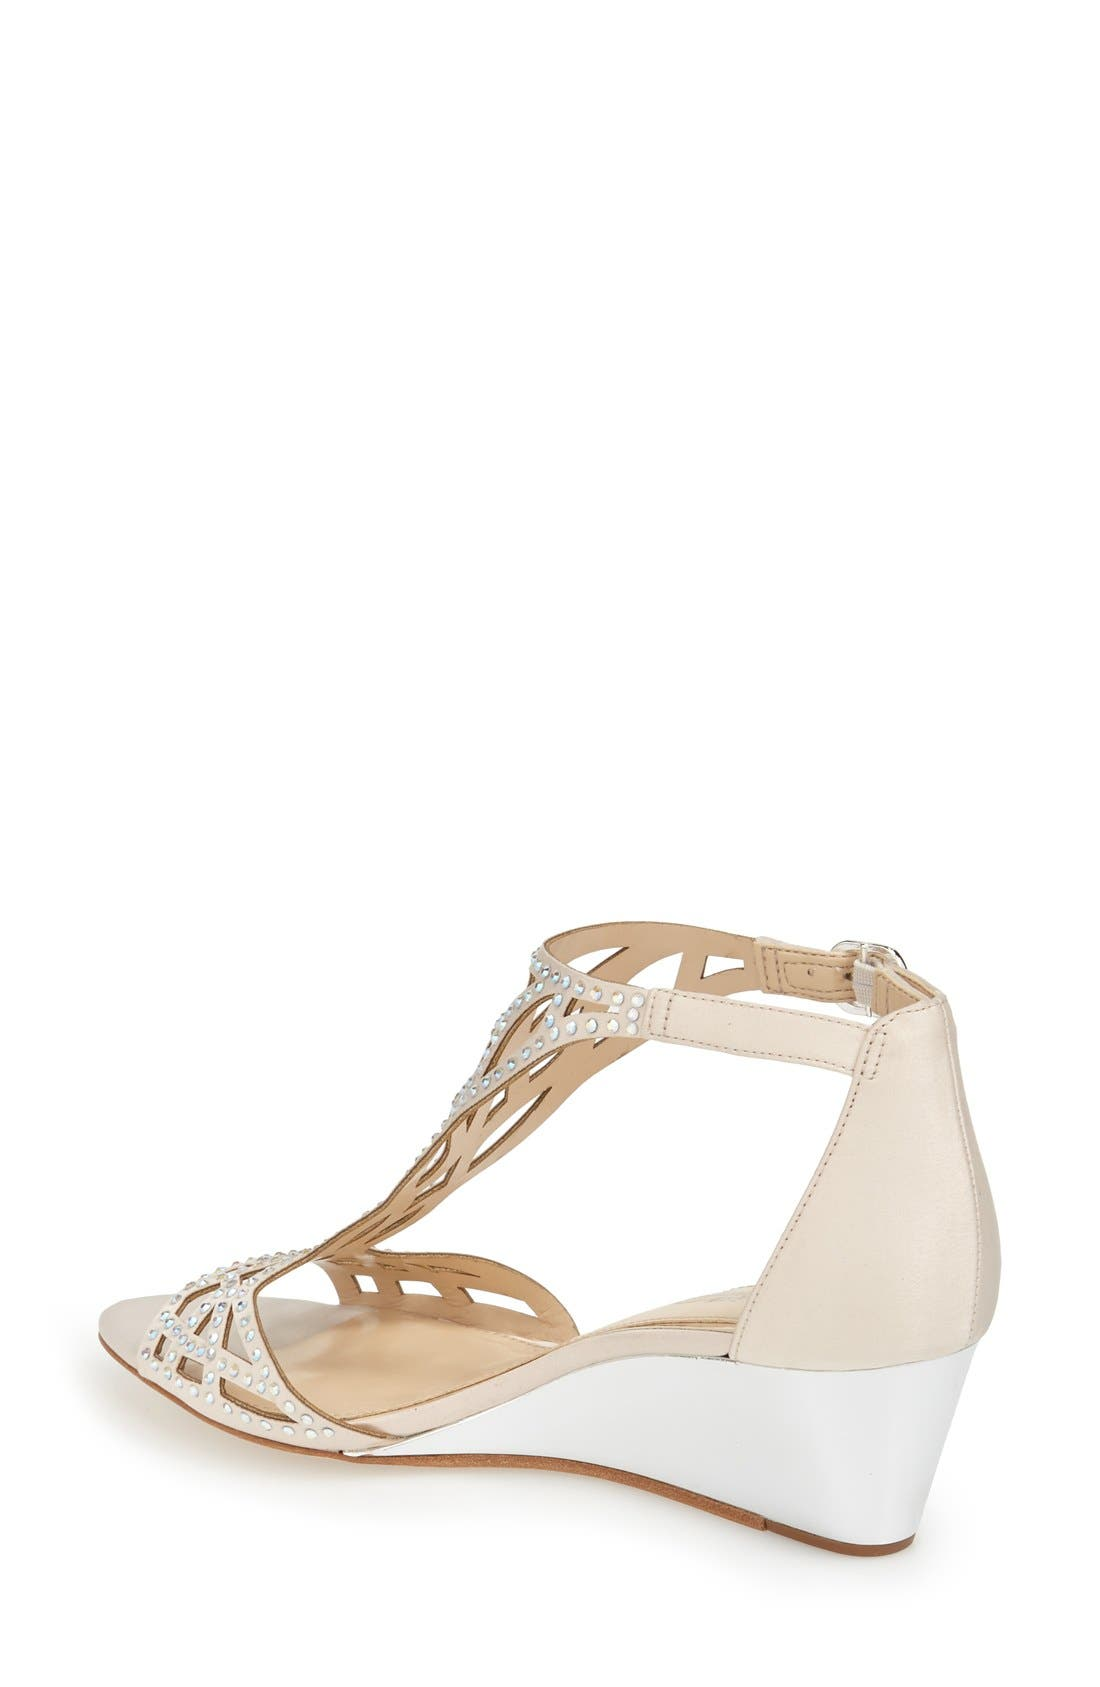 'Jalen' Wedge Sandal,                             Alternate thumbnail 2, color,                             Vanilla Satin